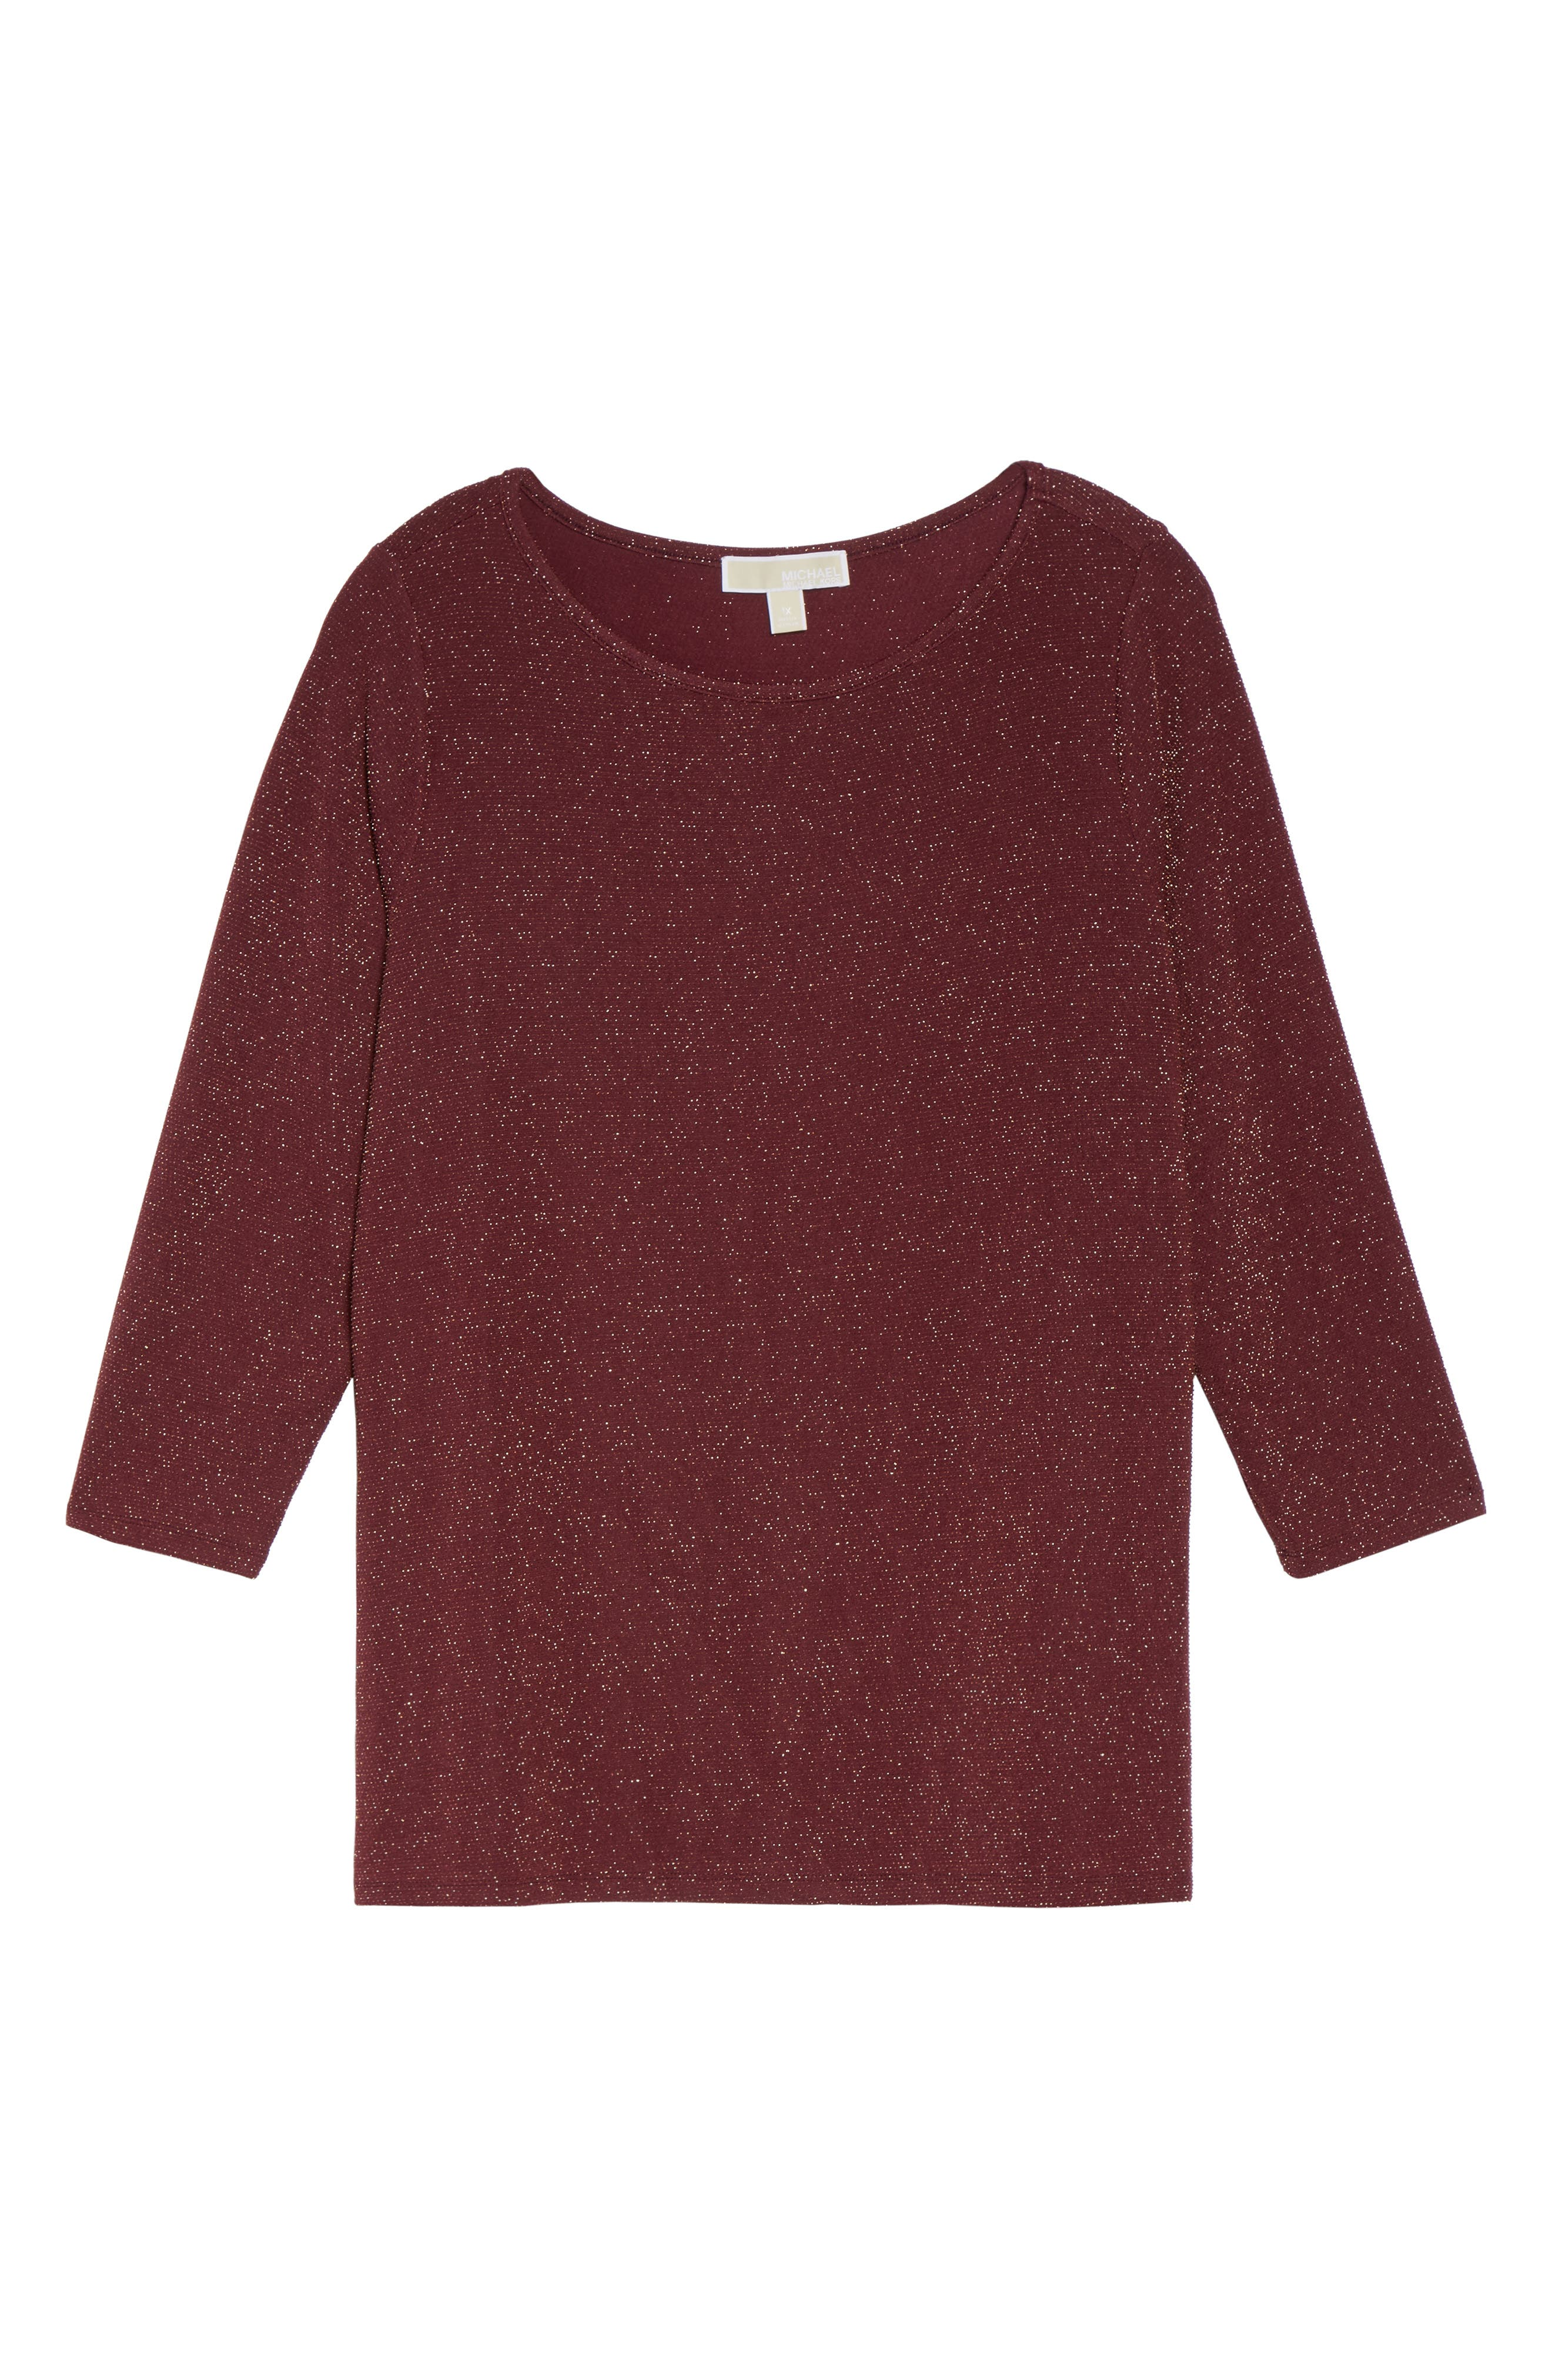 Metallic Top,                             Alternate thumbnail 6, color,                             Merlot